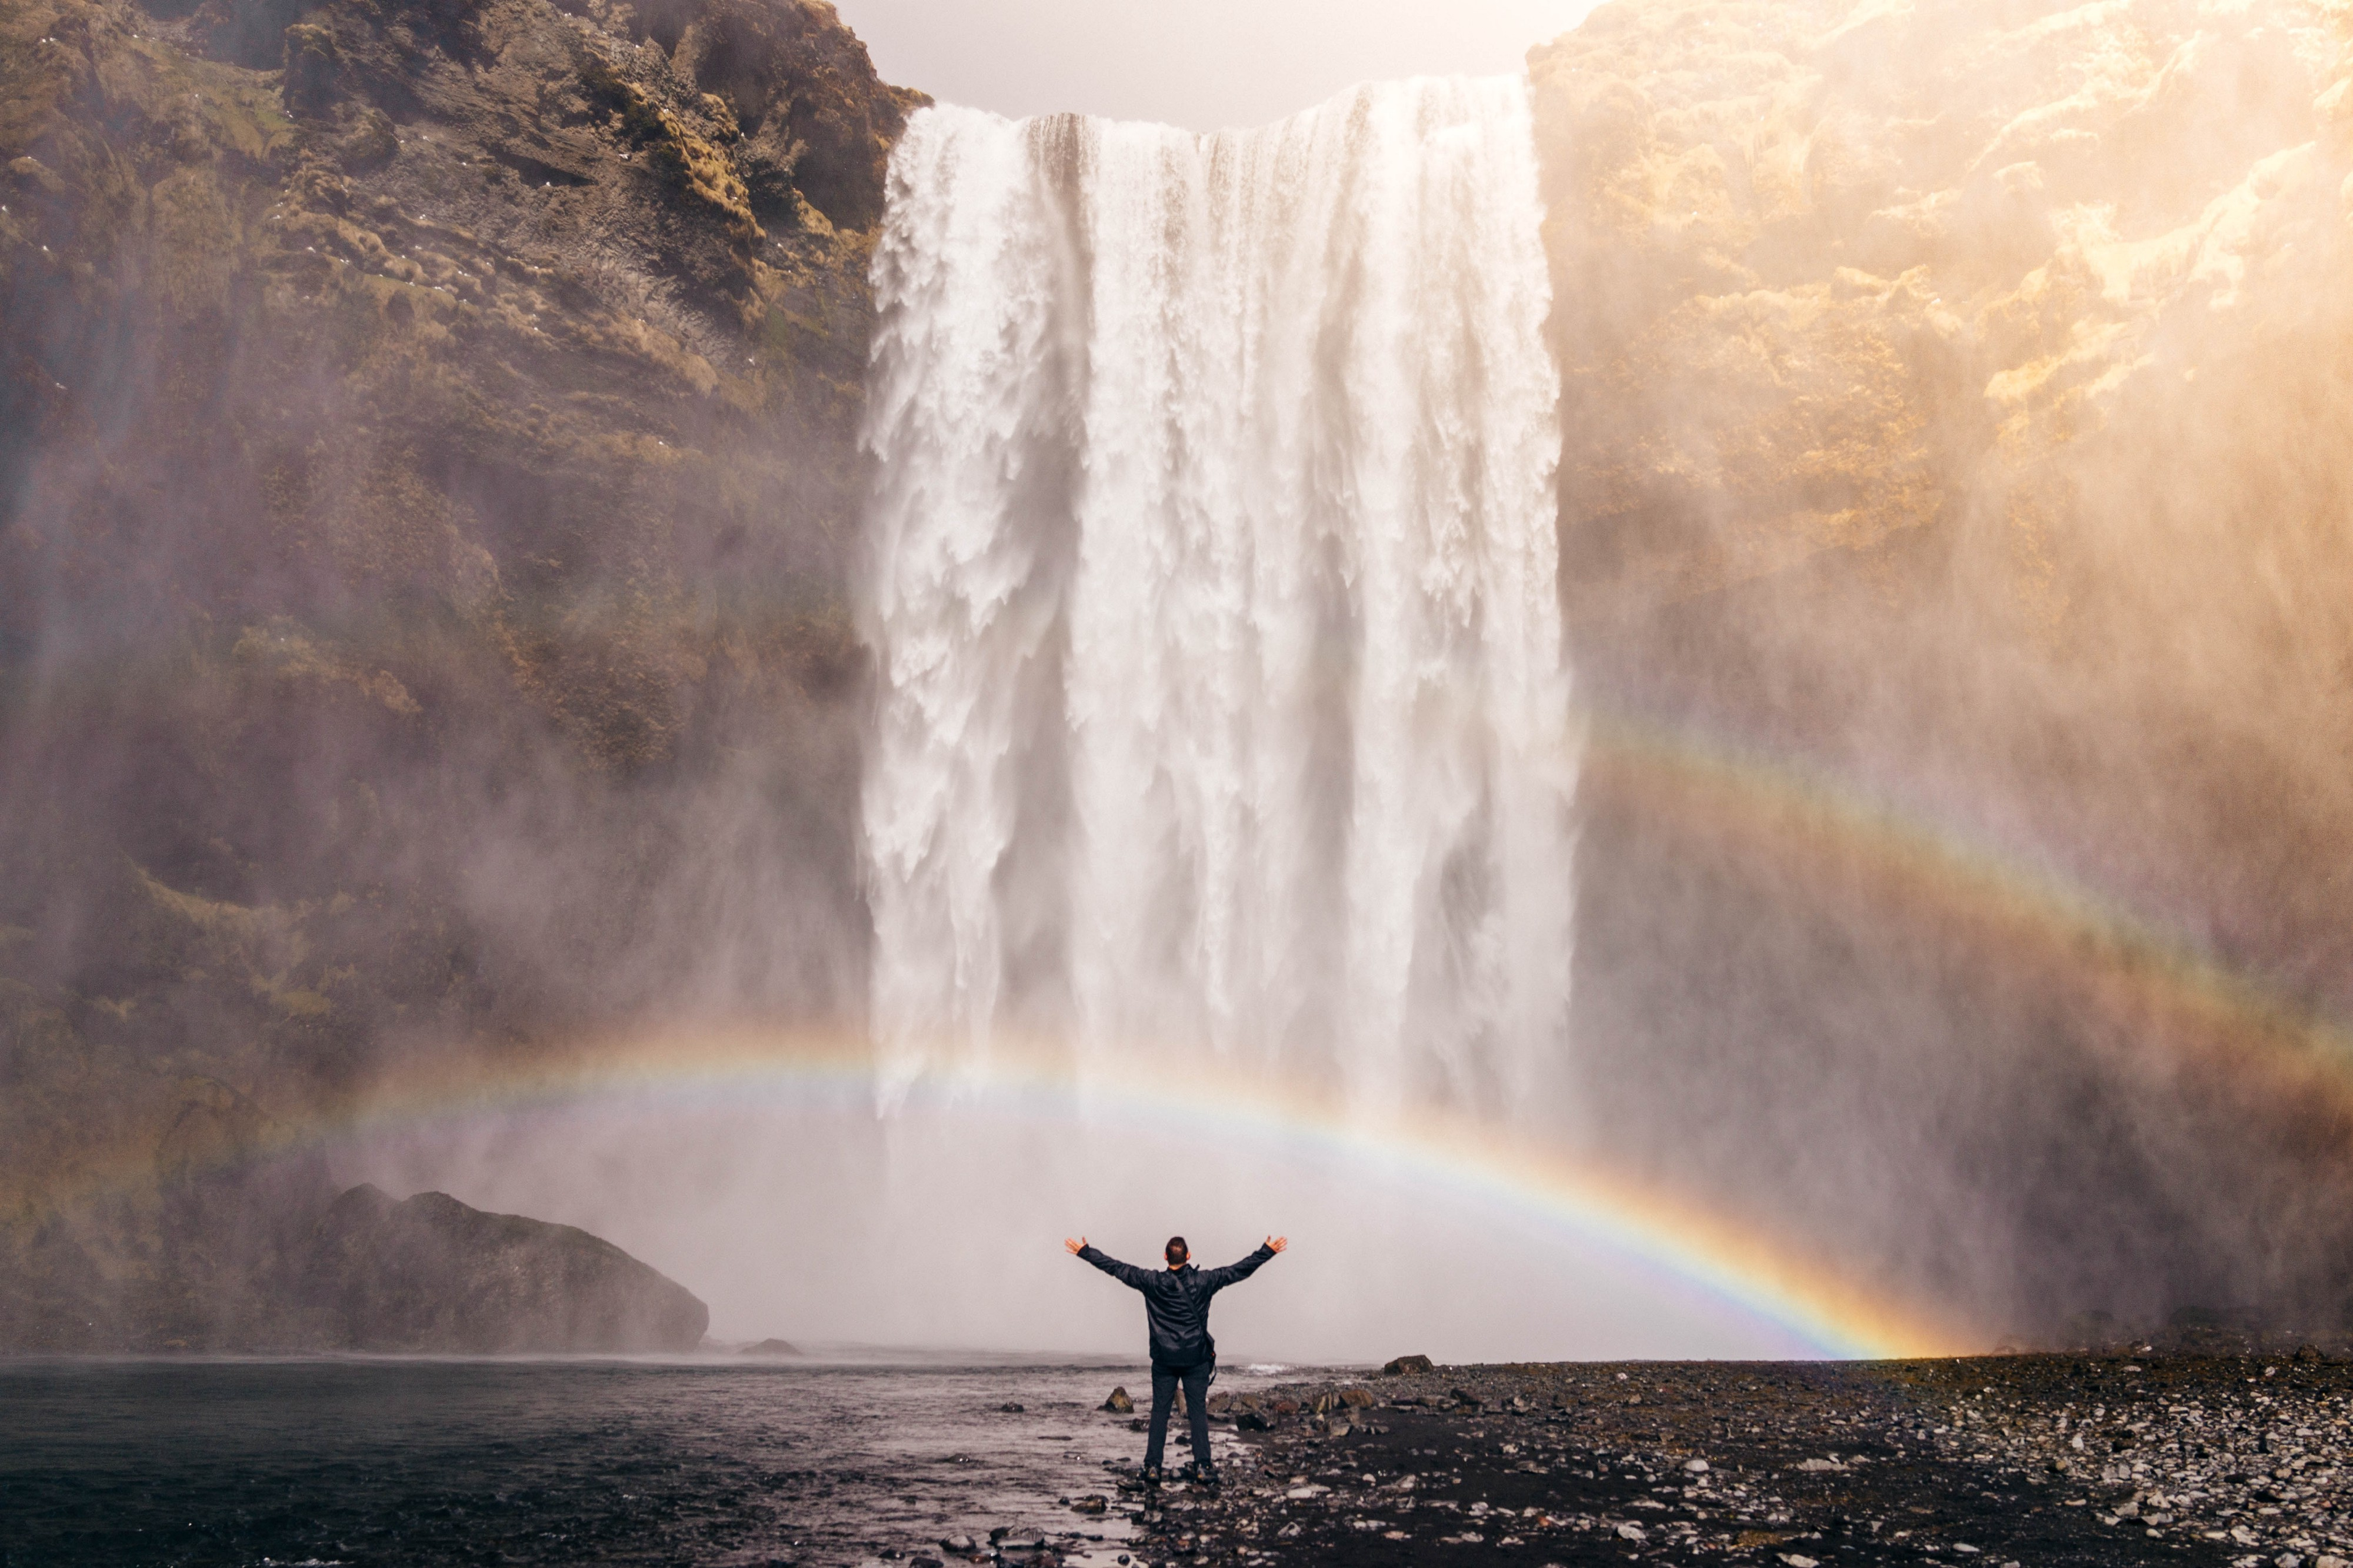 Person standing in awe of a large, beautiful waterfall.